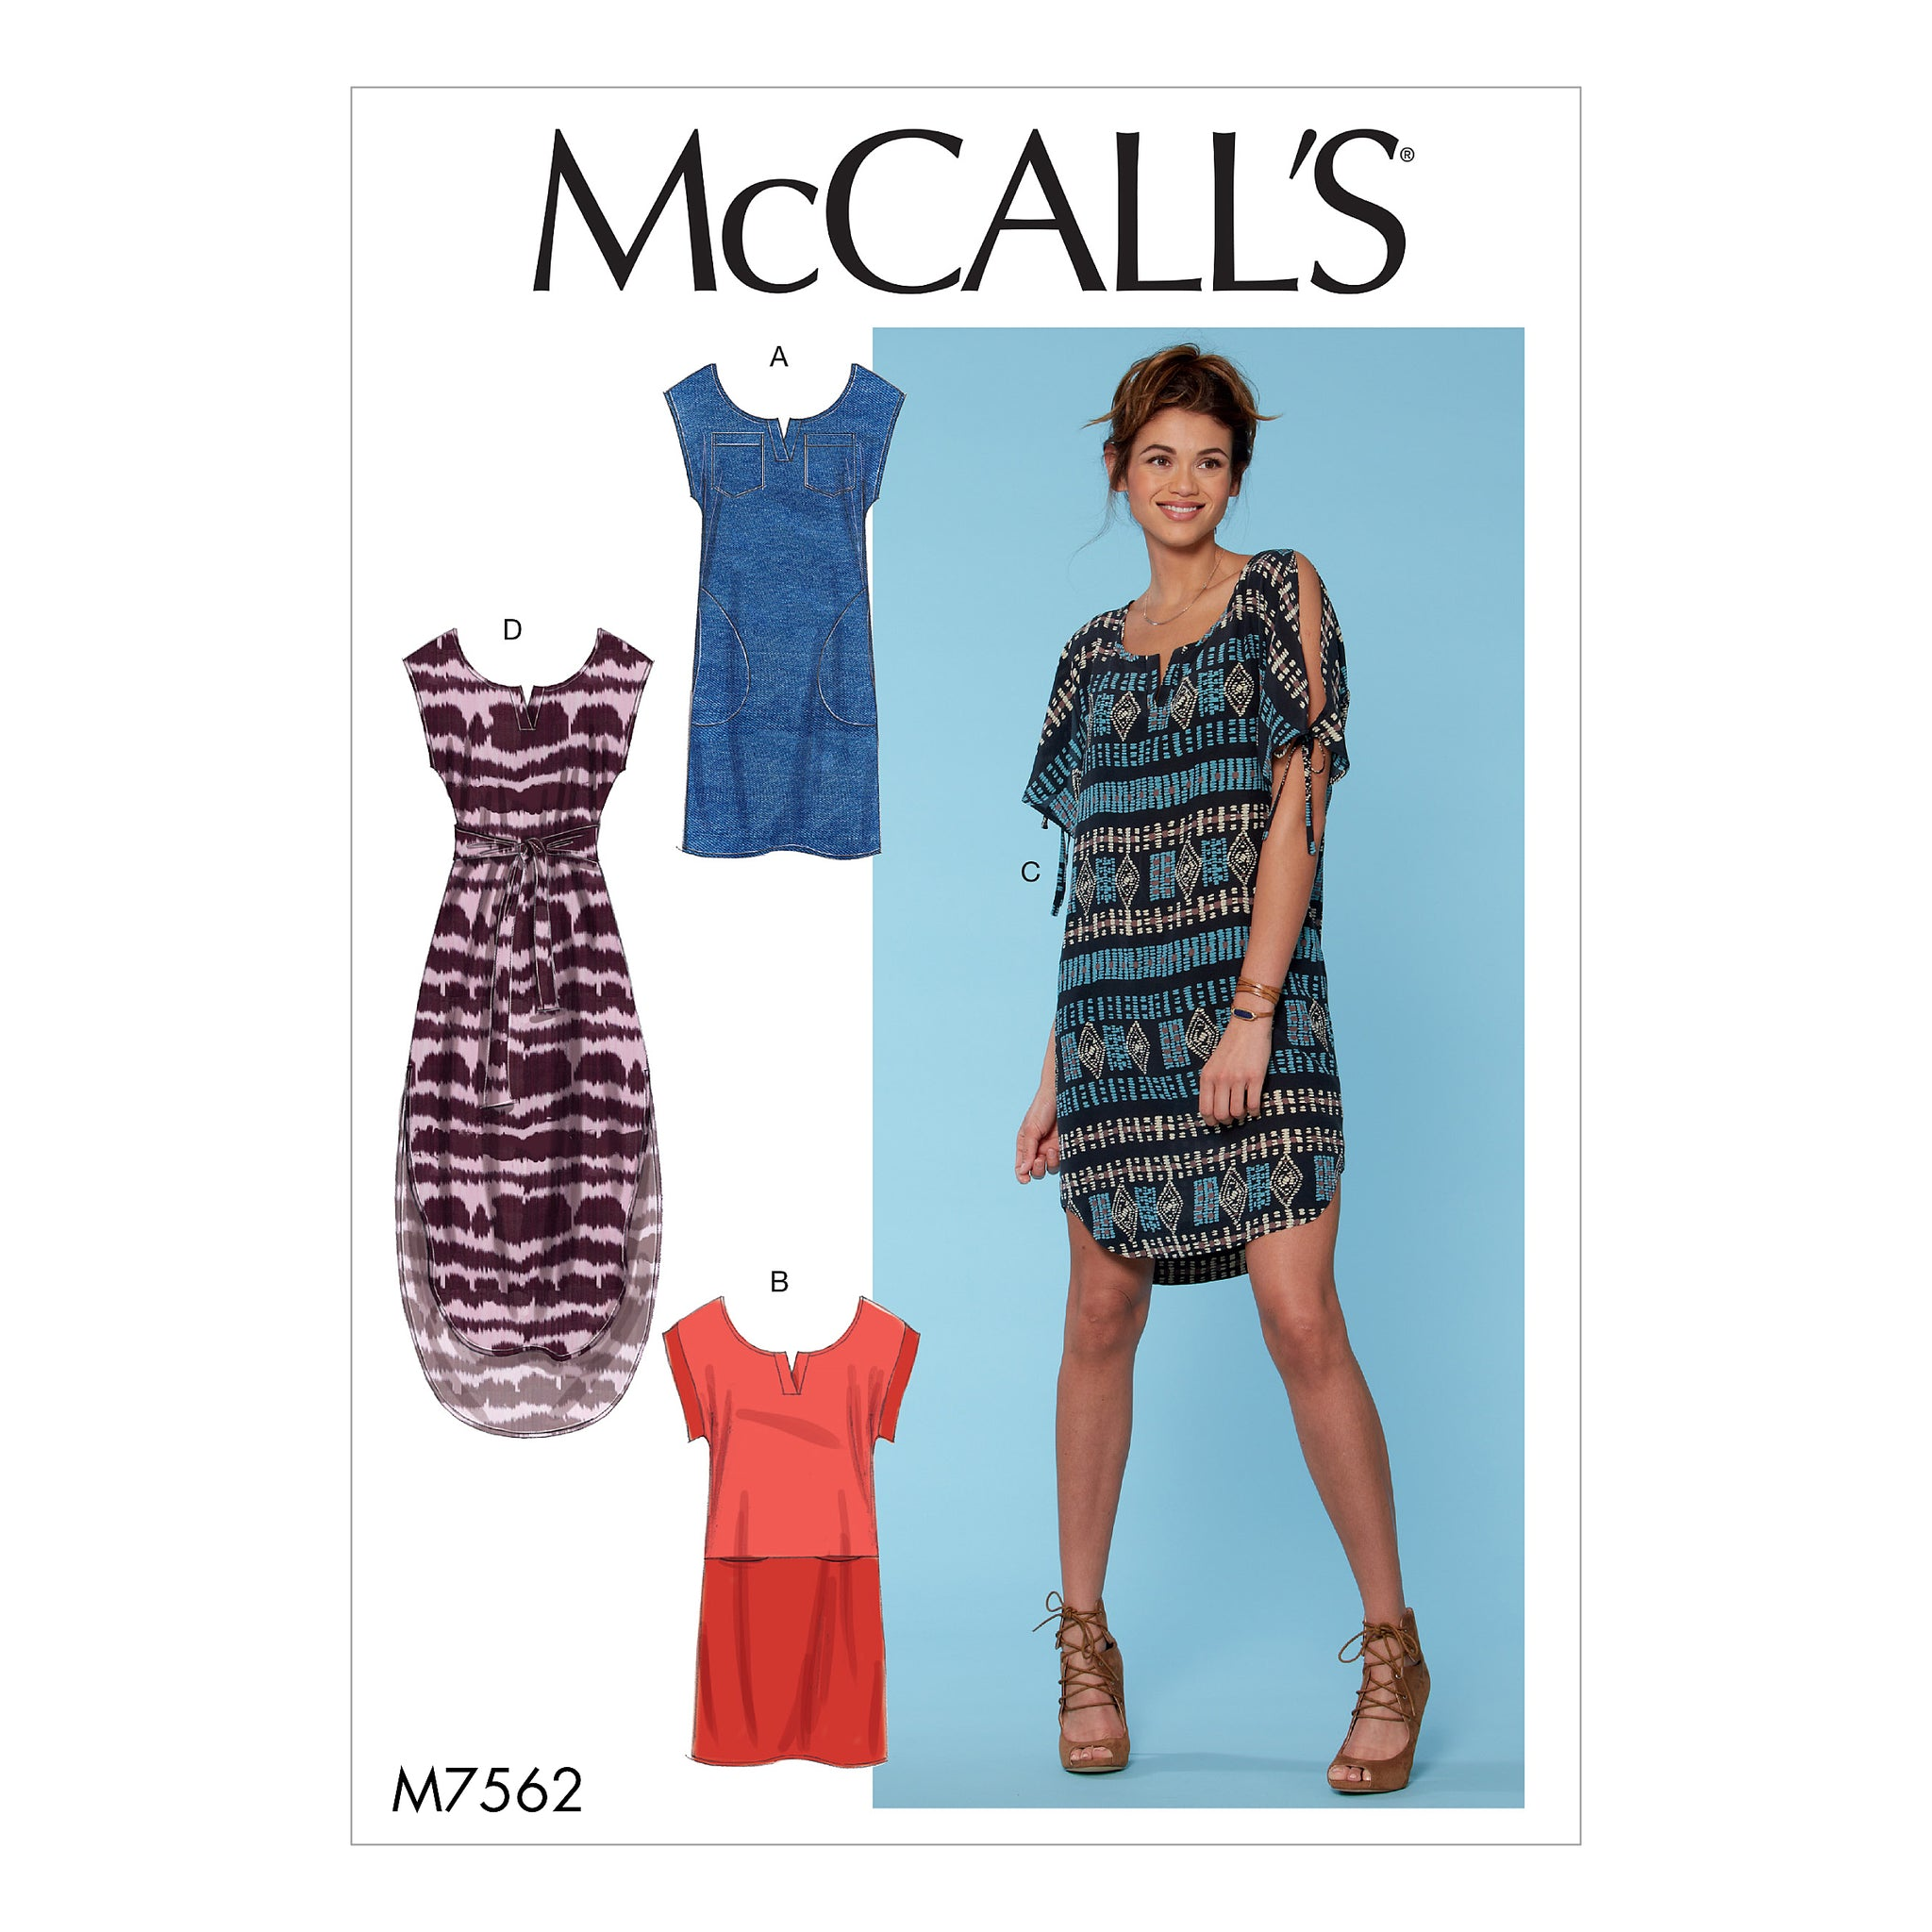 McCall's M75620Y0 Misses' Pullover Dresses with Sleeve Ties, Pocket Variations, and belt XSM-SML-MED